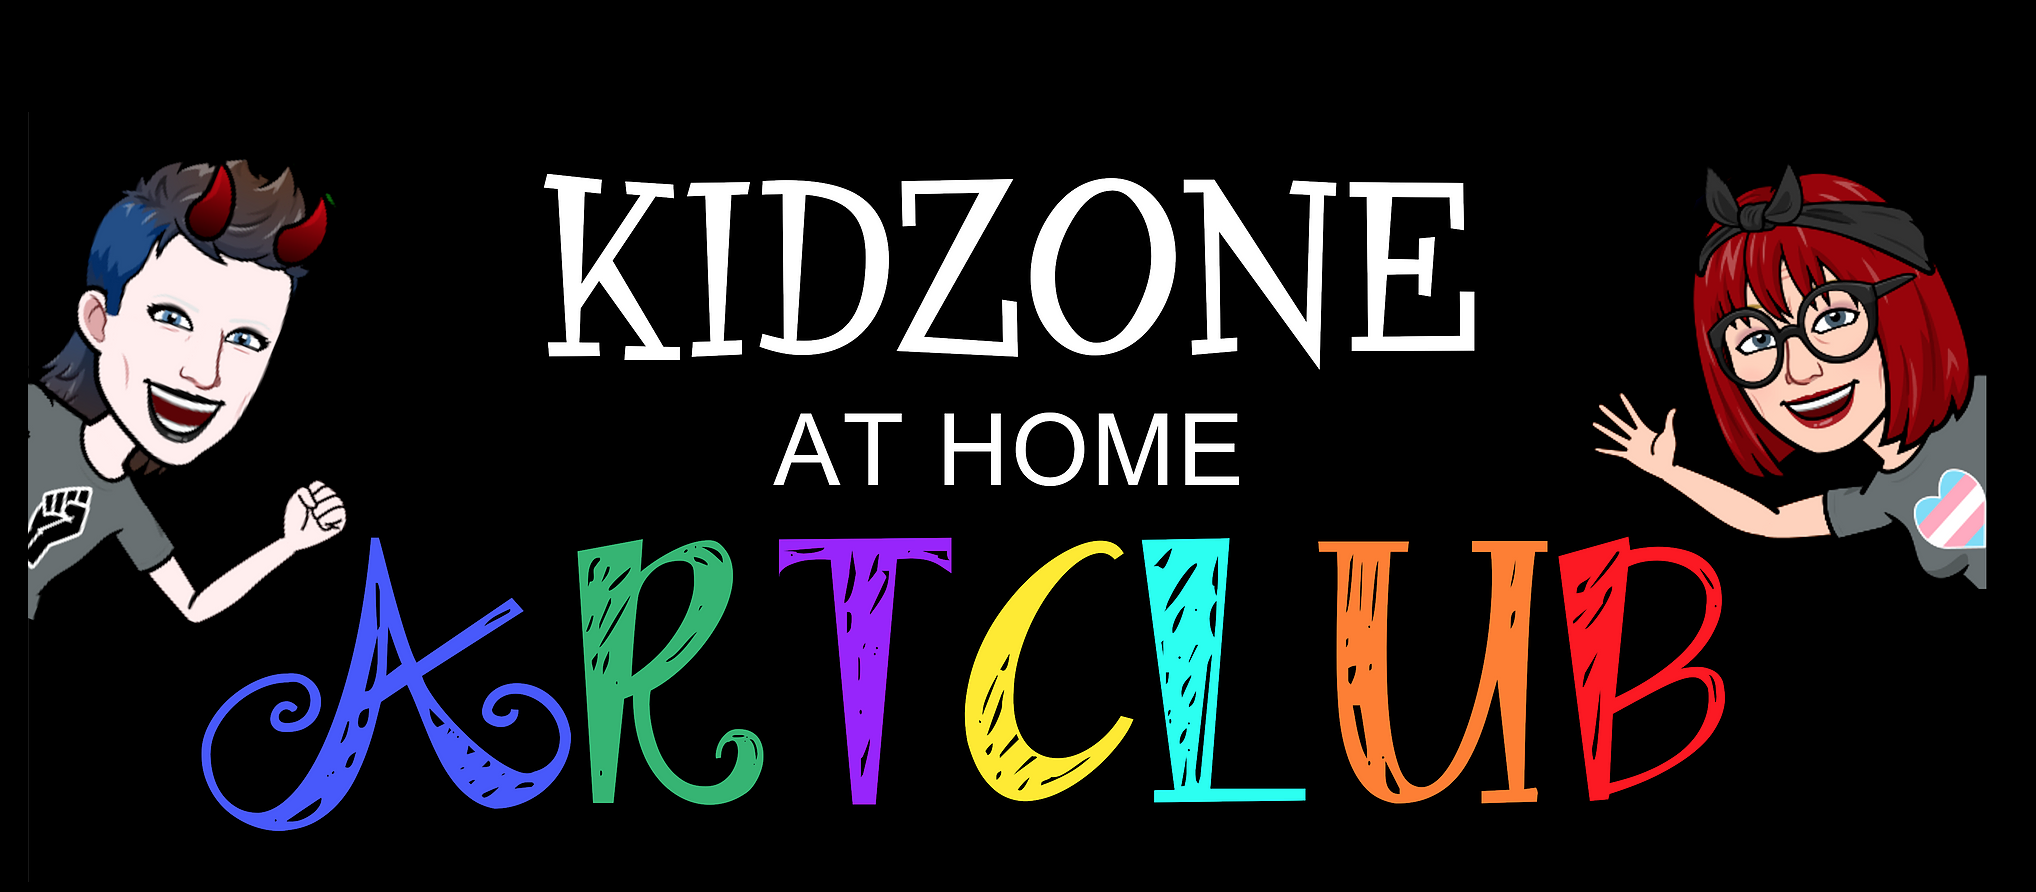 Thank You To Denise From Kidzone